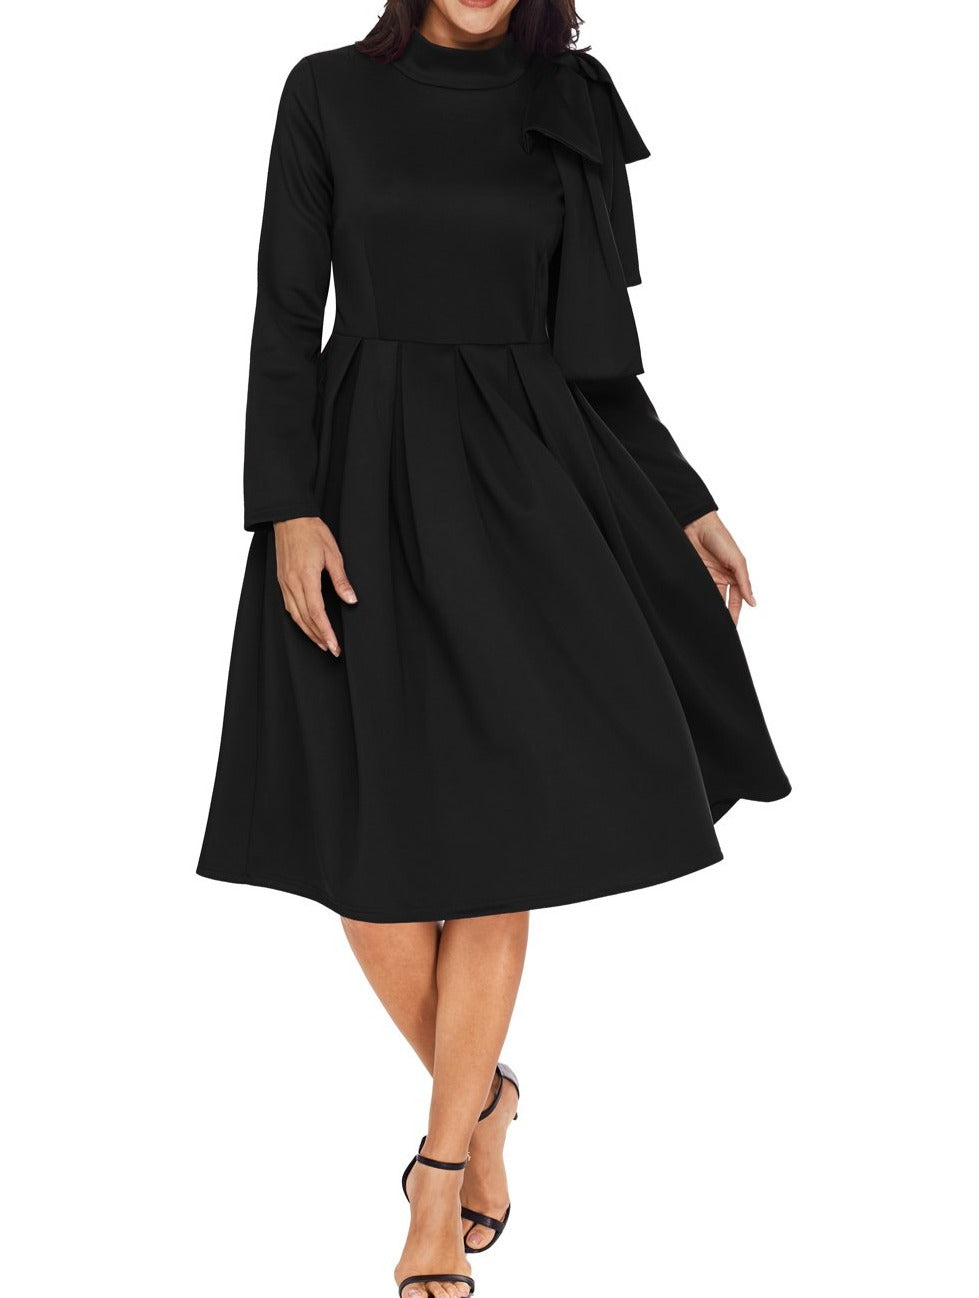 Black Bowknot Embellished Mock Neck Pocket Dress